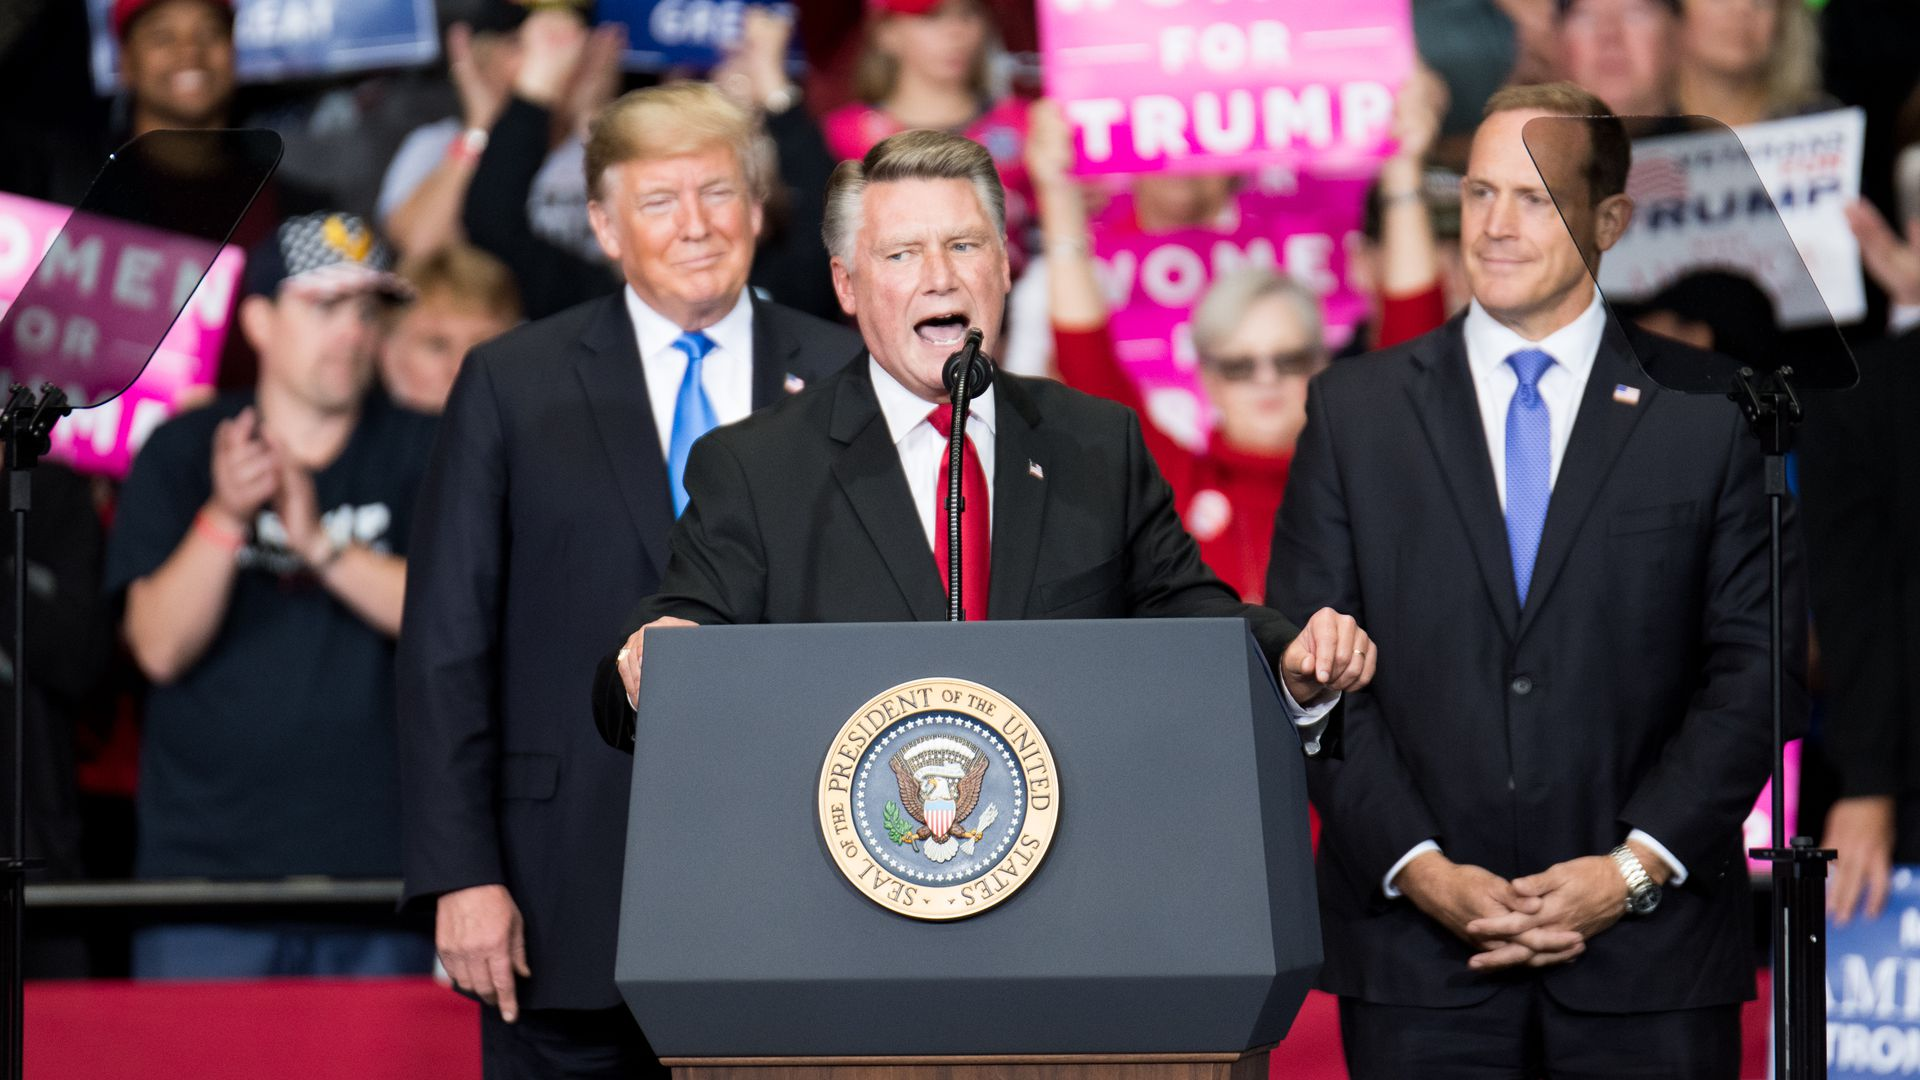 Mark Harris, North Carolina's 9th district Republican candidate at a campaign rally last year.